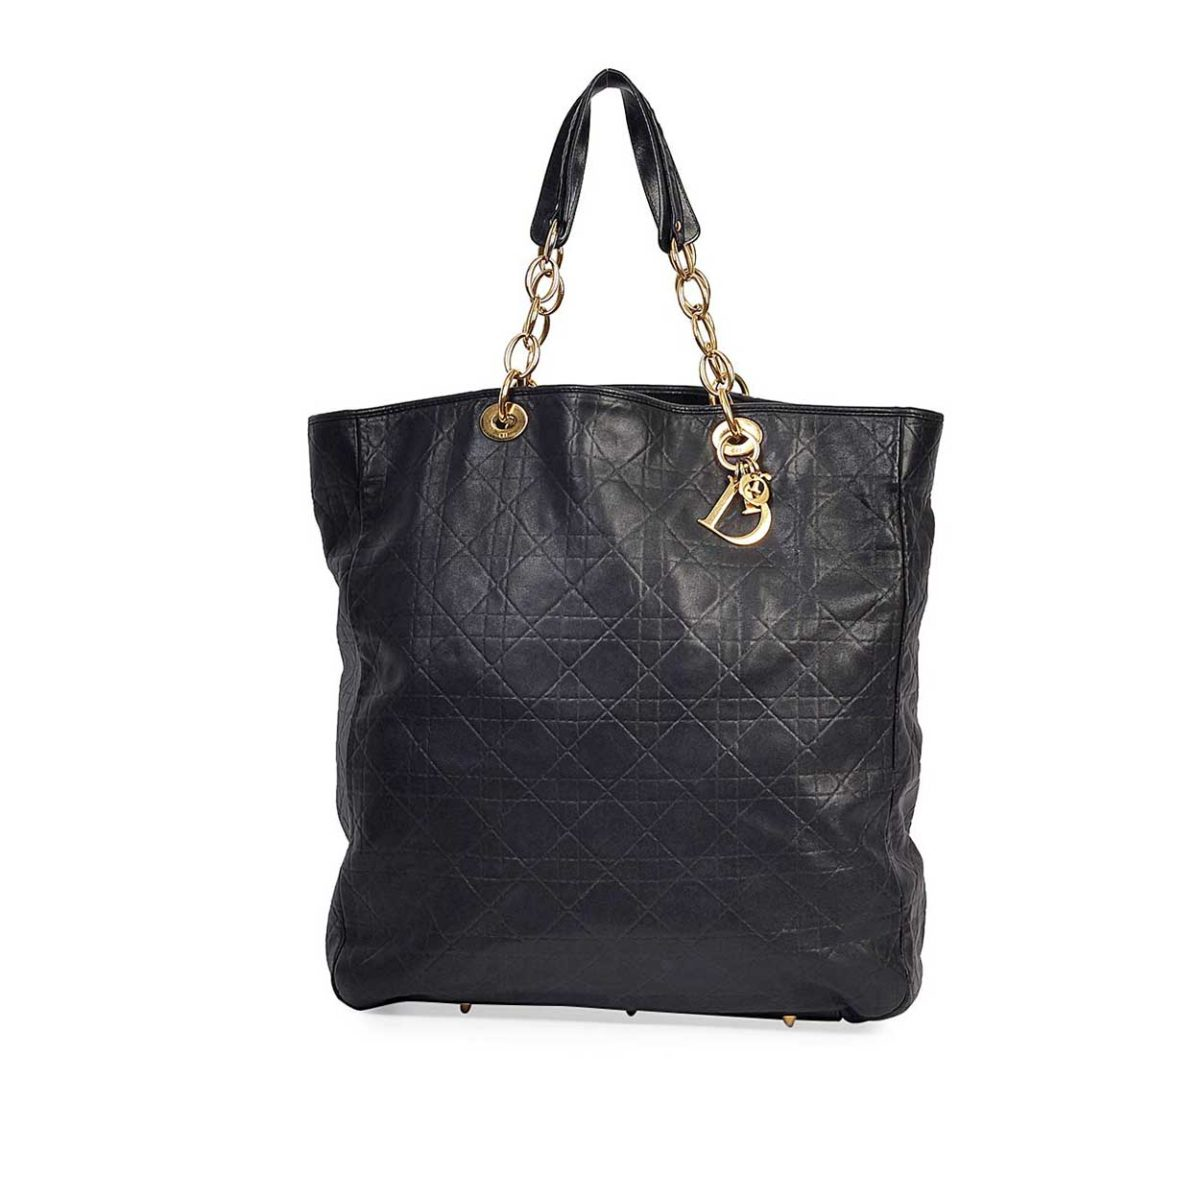 CHRISTIAN DIOR Cannage Quilted Lambskin Leather Soft Shopping Tote Bag Black 4a070e03aba0c